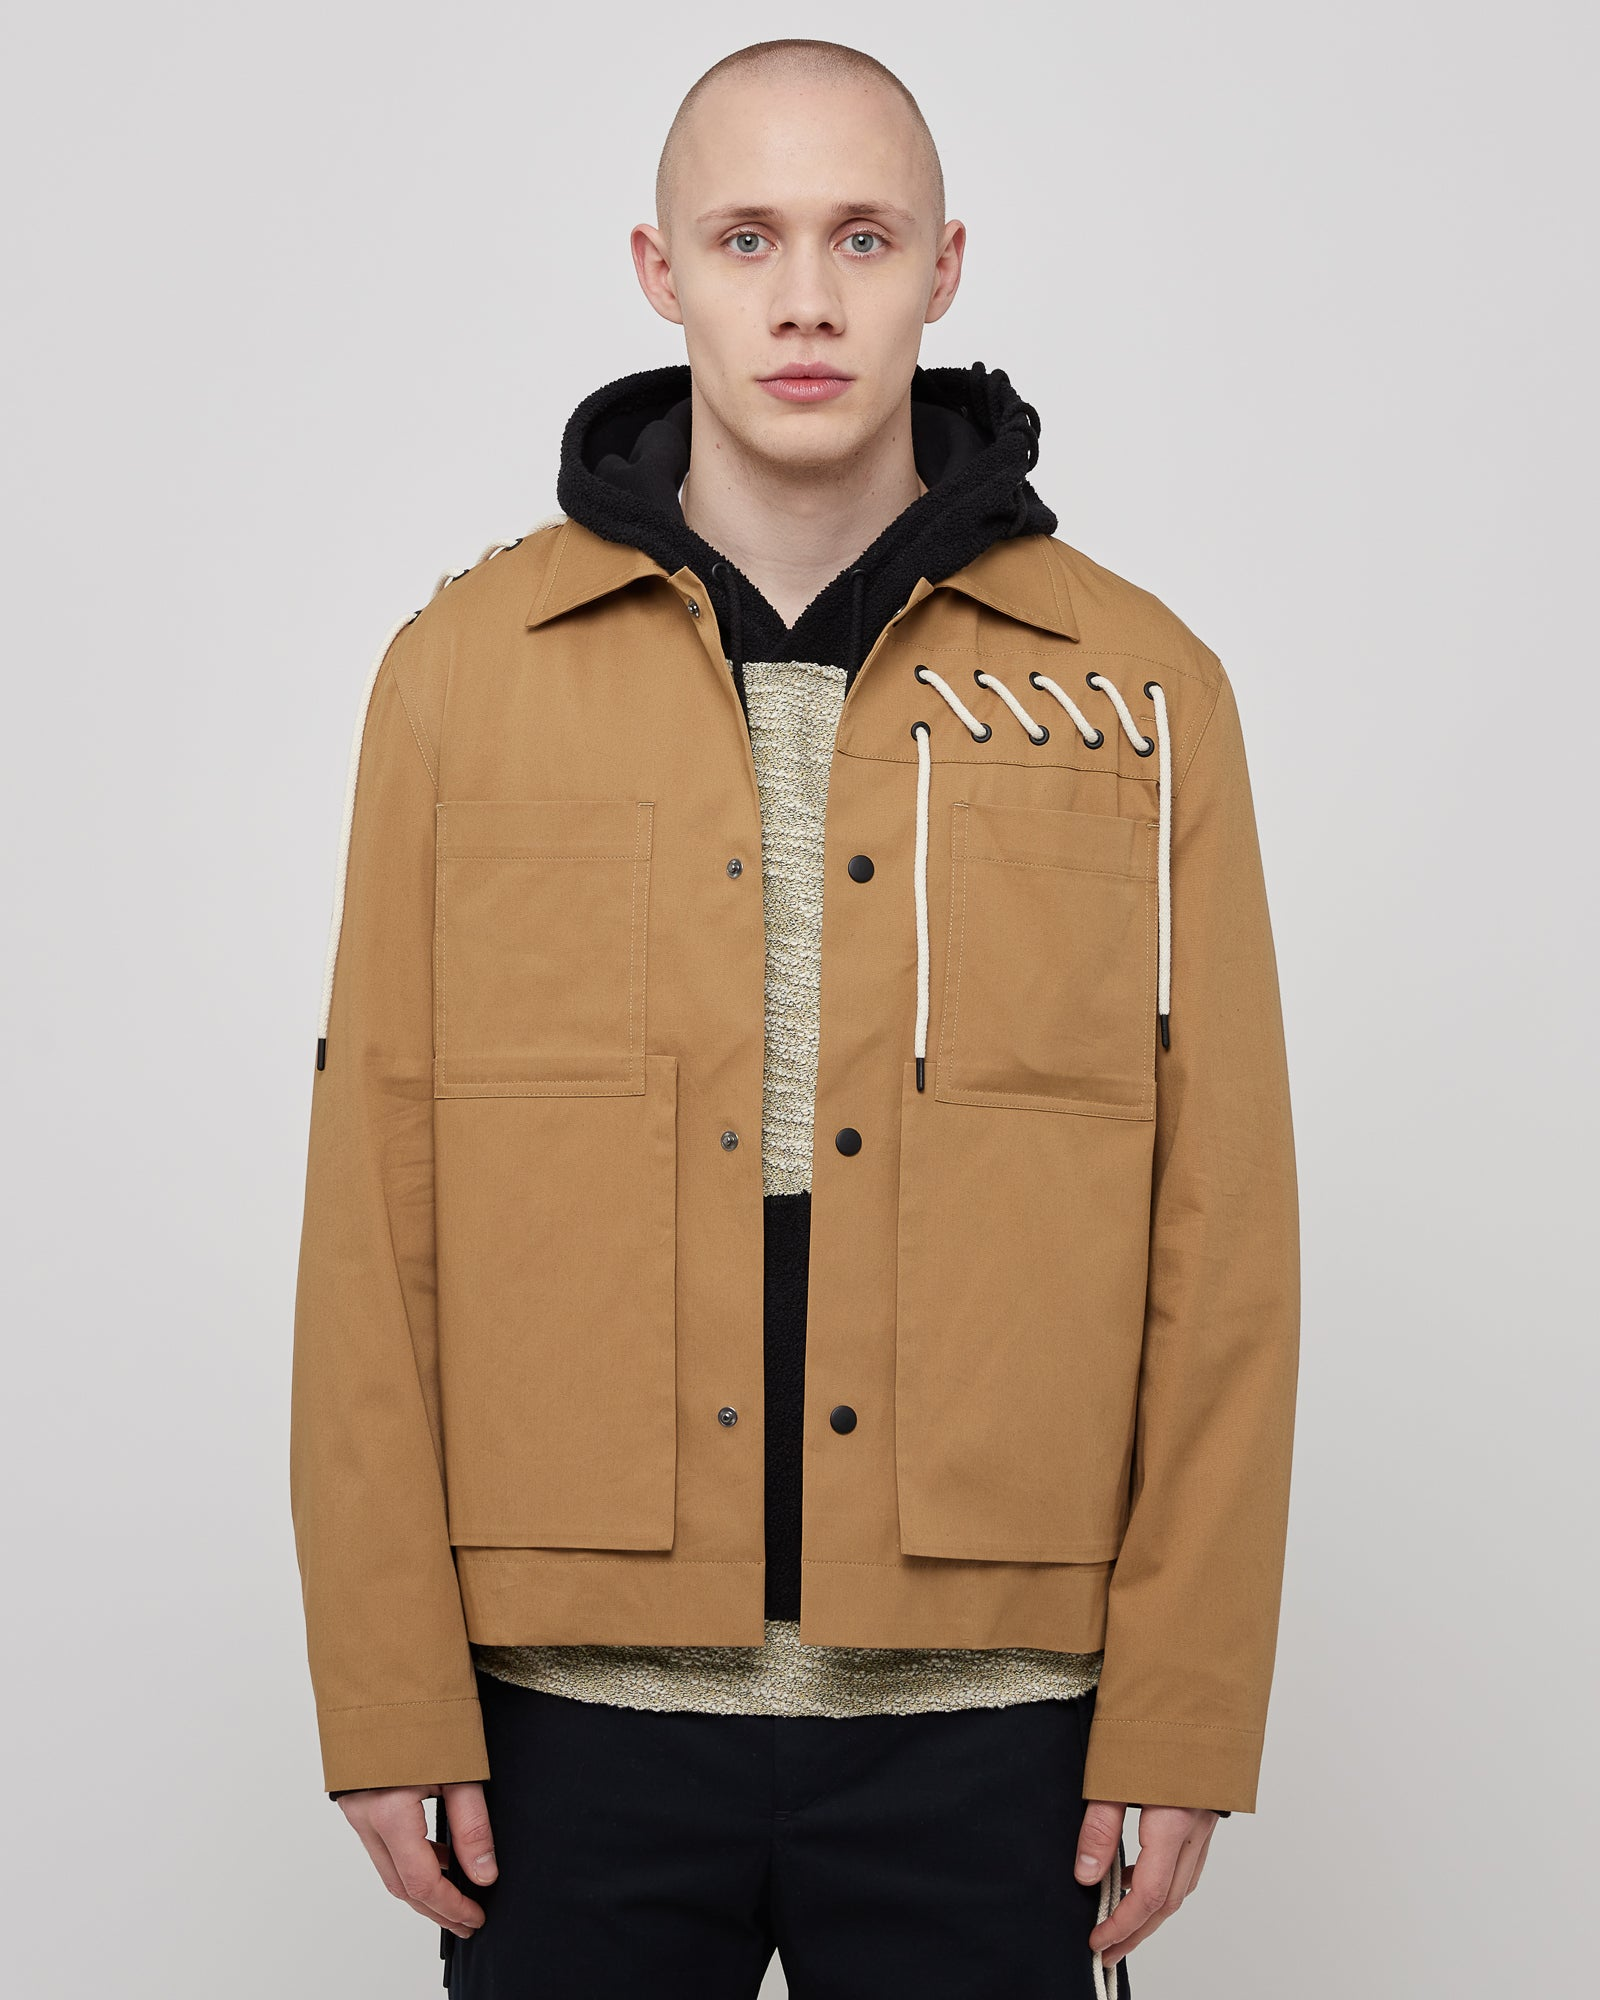 Laced Worker Jacket in Beige Cream